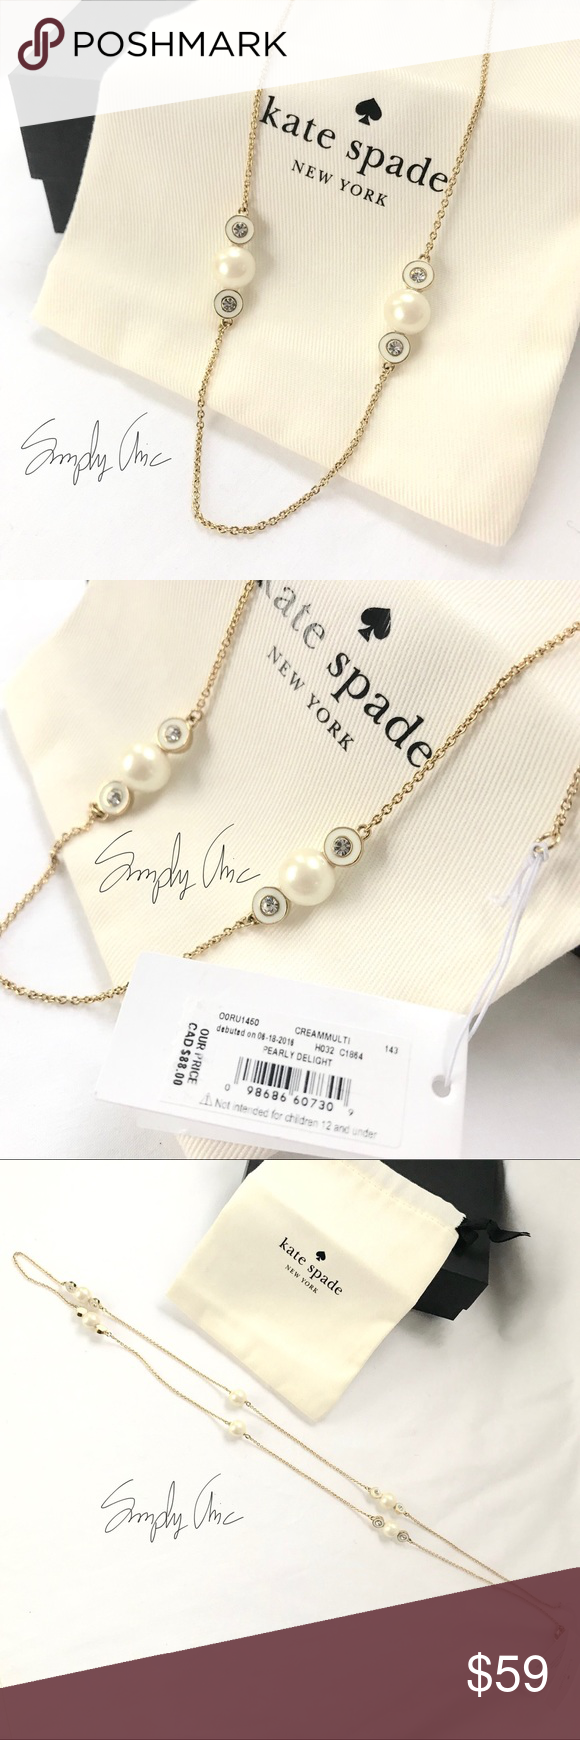 7df33279ba56b New Kate Spade pearly delight necklace Add instant elegance to any ...